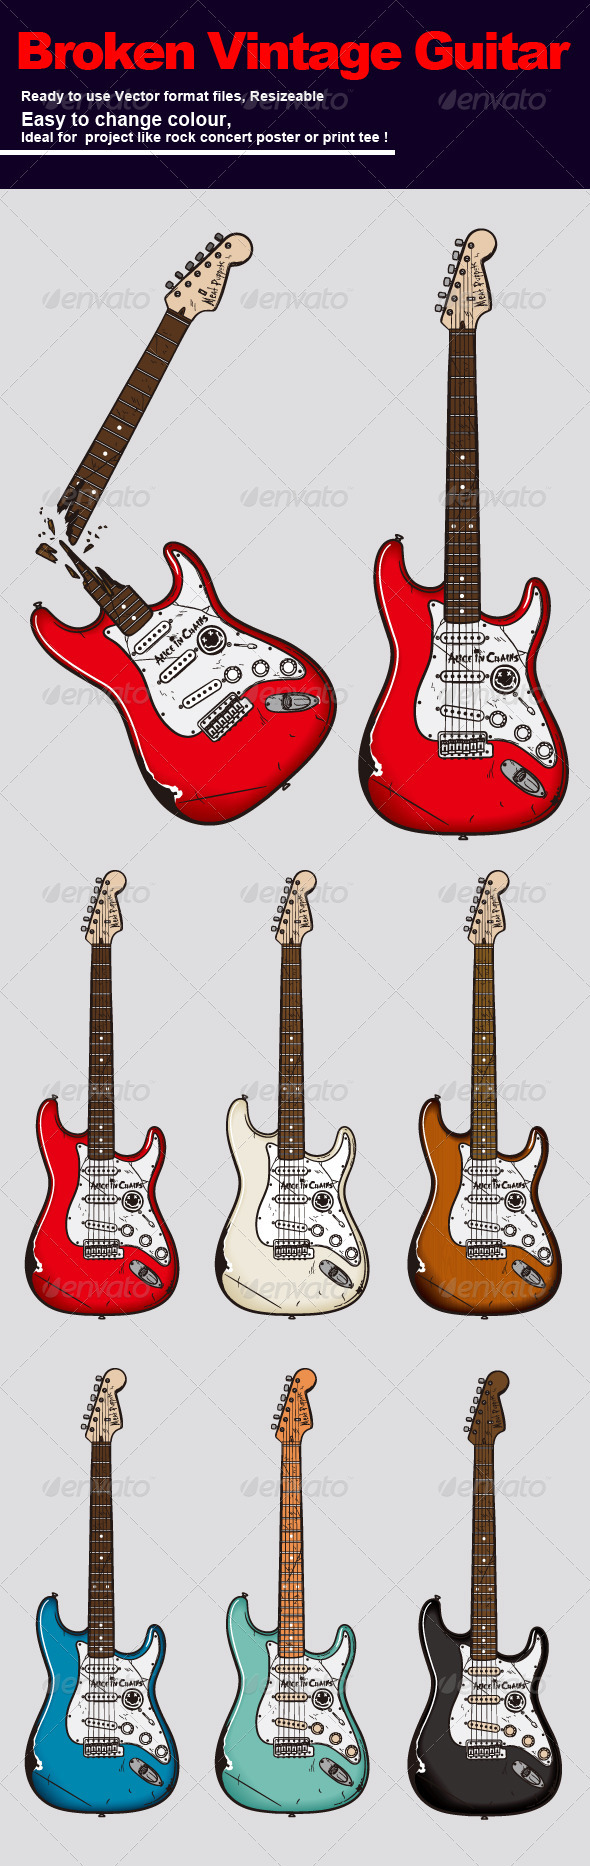 GraphicRiver Broken Vintage Guitar 3469897